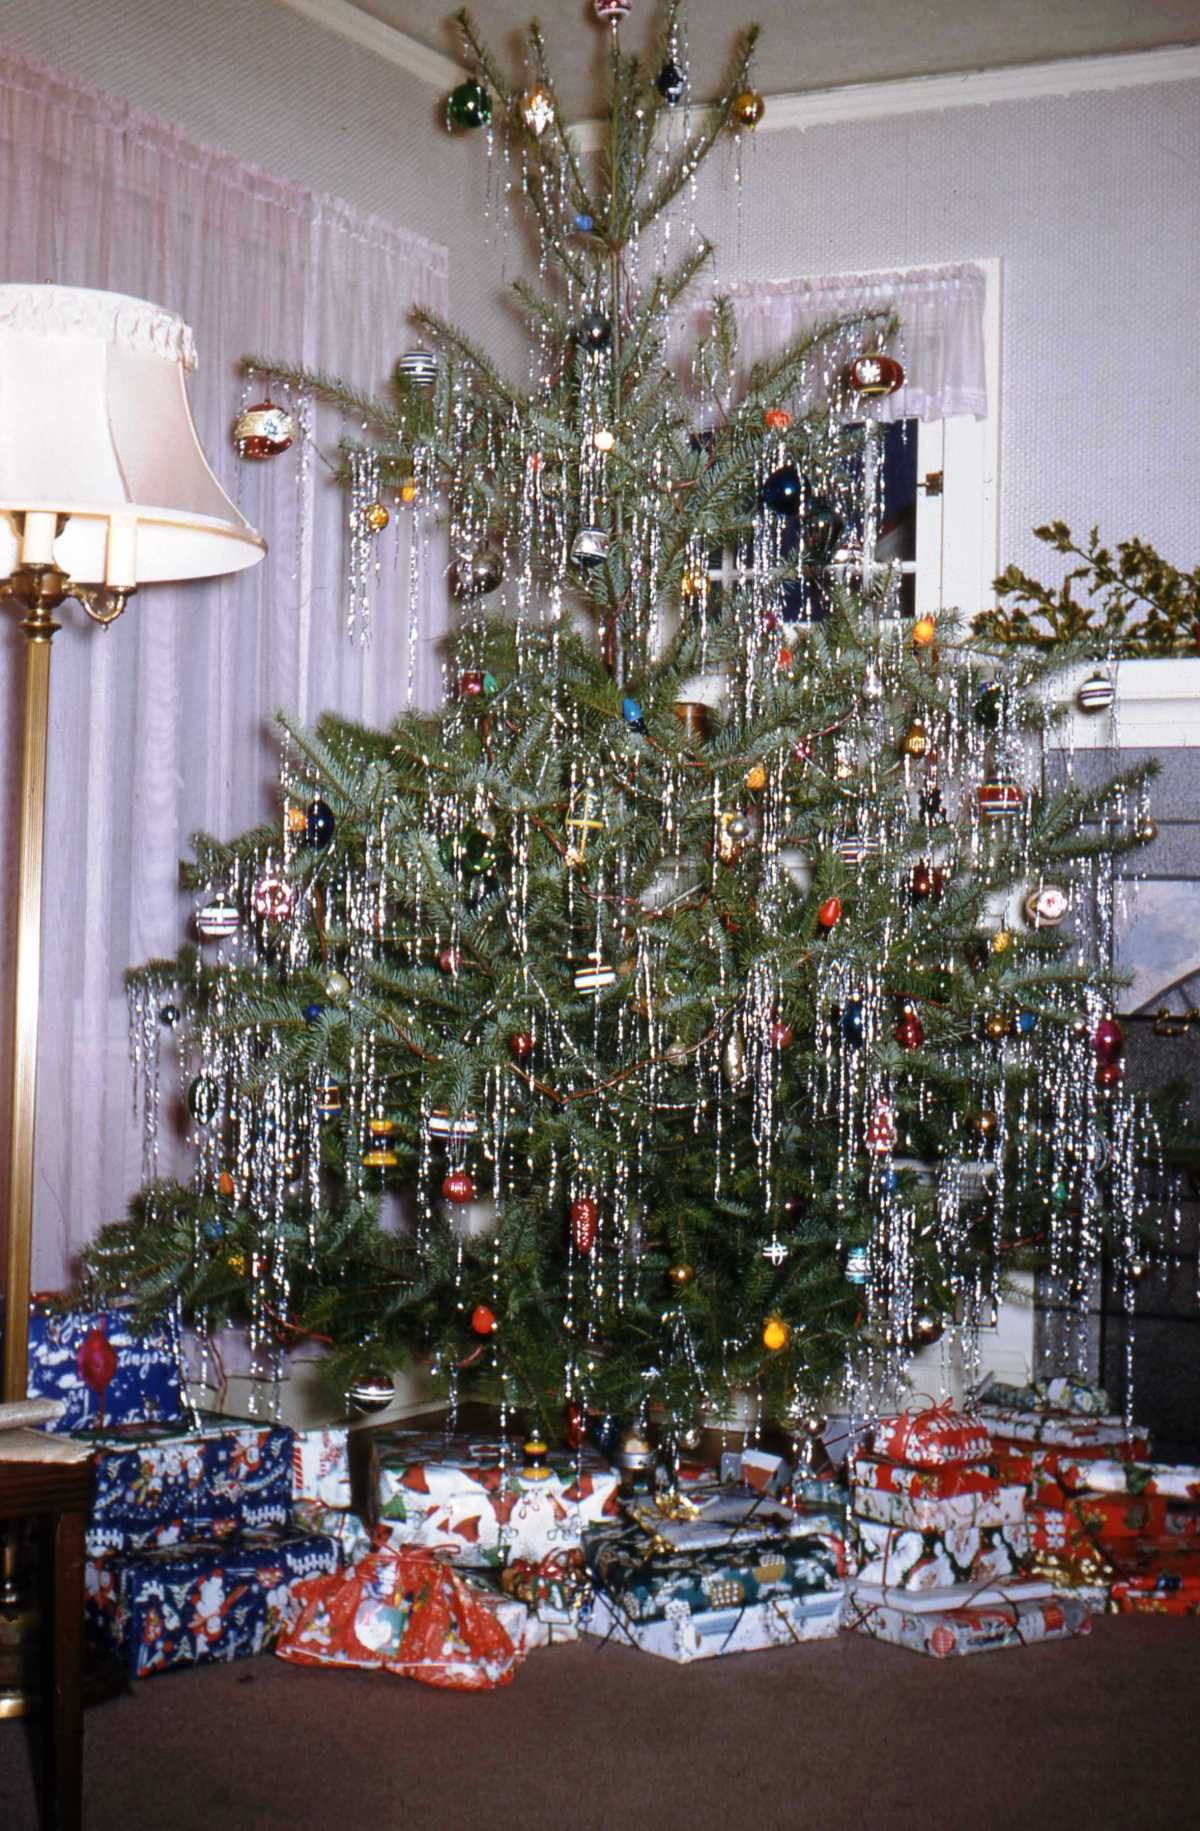 a vintage 1950s christmas tree i love trees dripping with silver tinsellooks like icicles